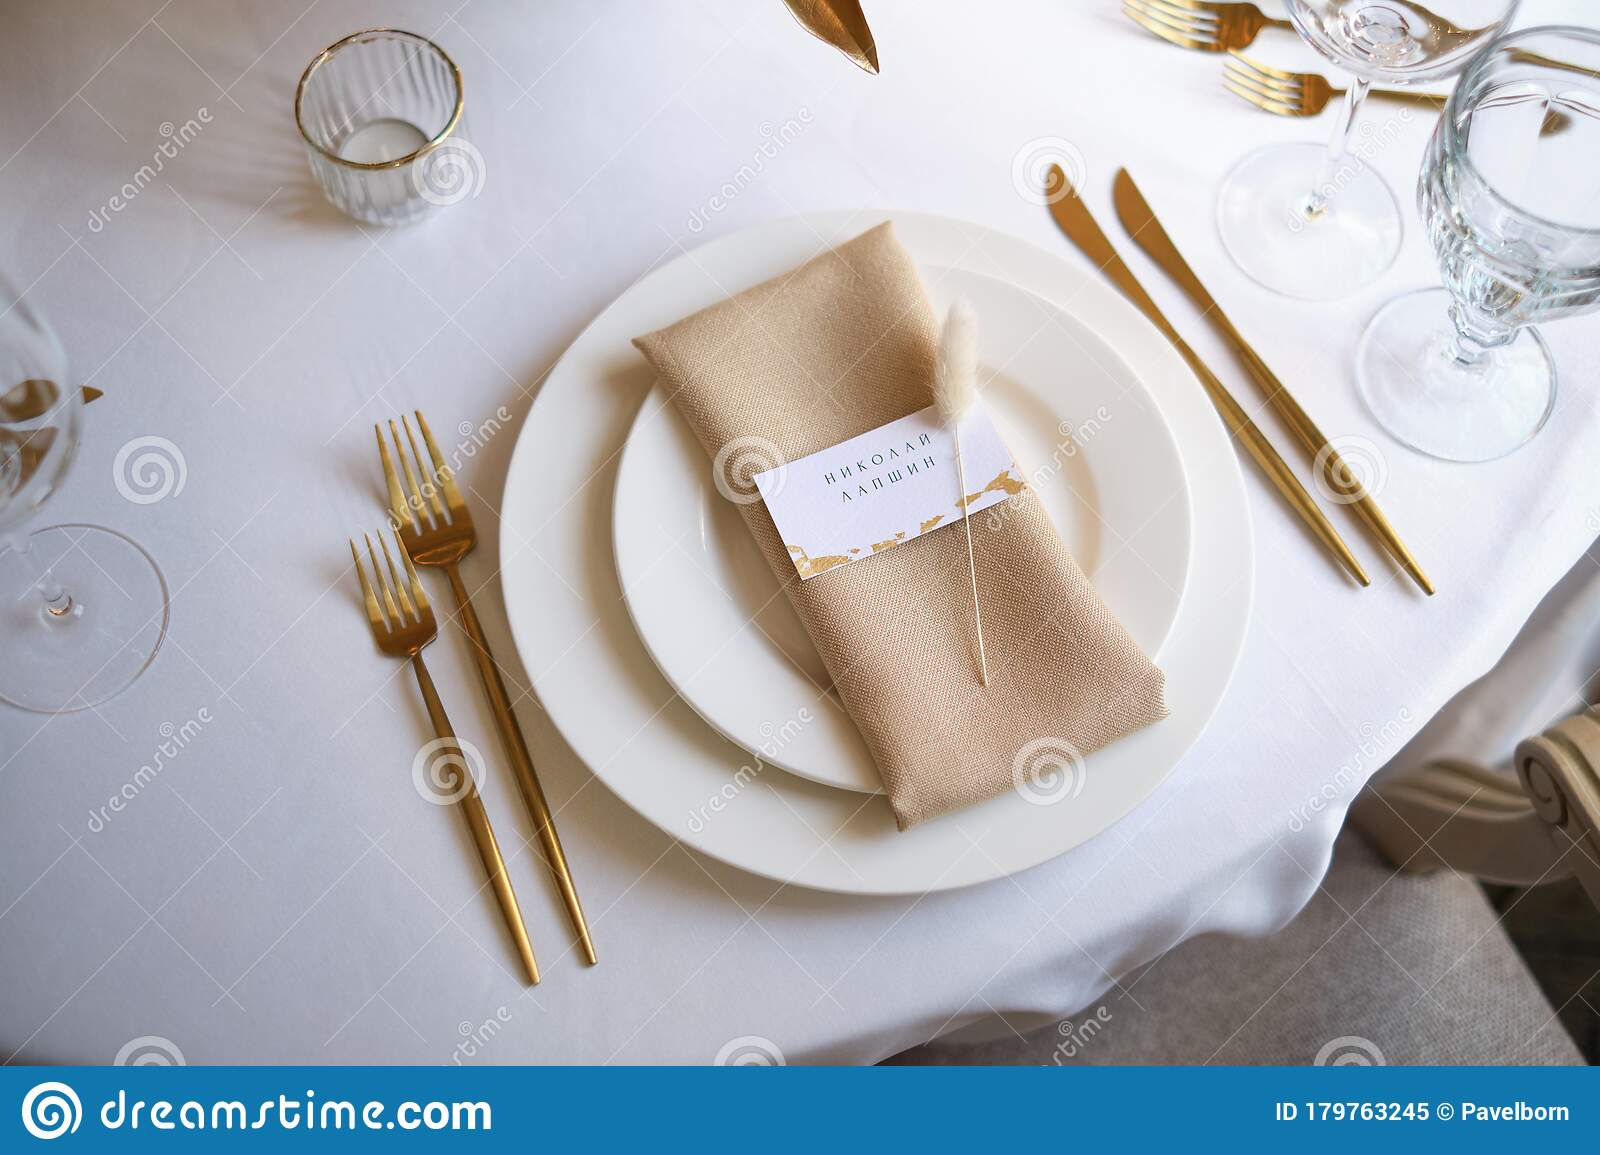 Luxury Cozy Autumn Wedding Table Decoration In The Restaurant Fresh And Dried Flowers Roses Carnations Beautiful Table Setting Stock Image Image Of Cozy Appliances 179763245